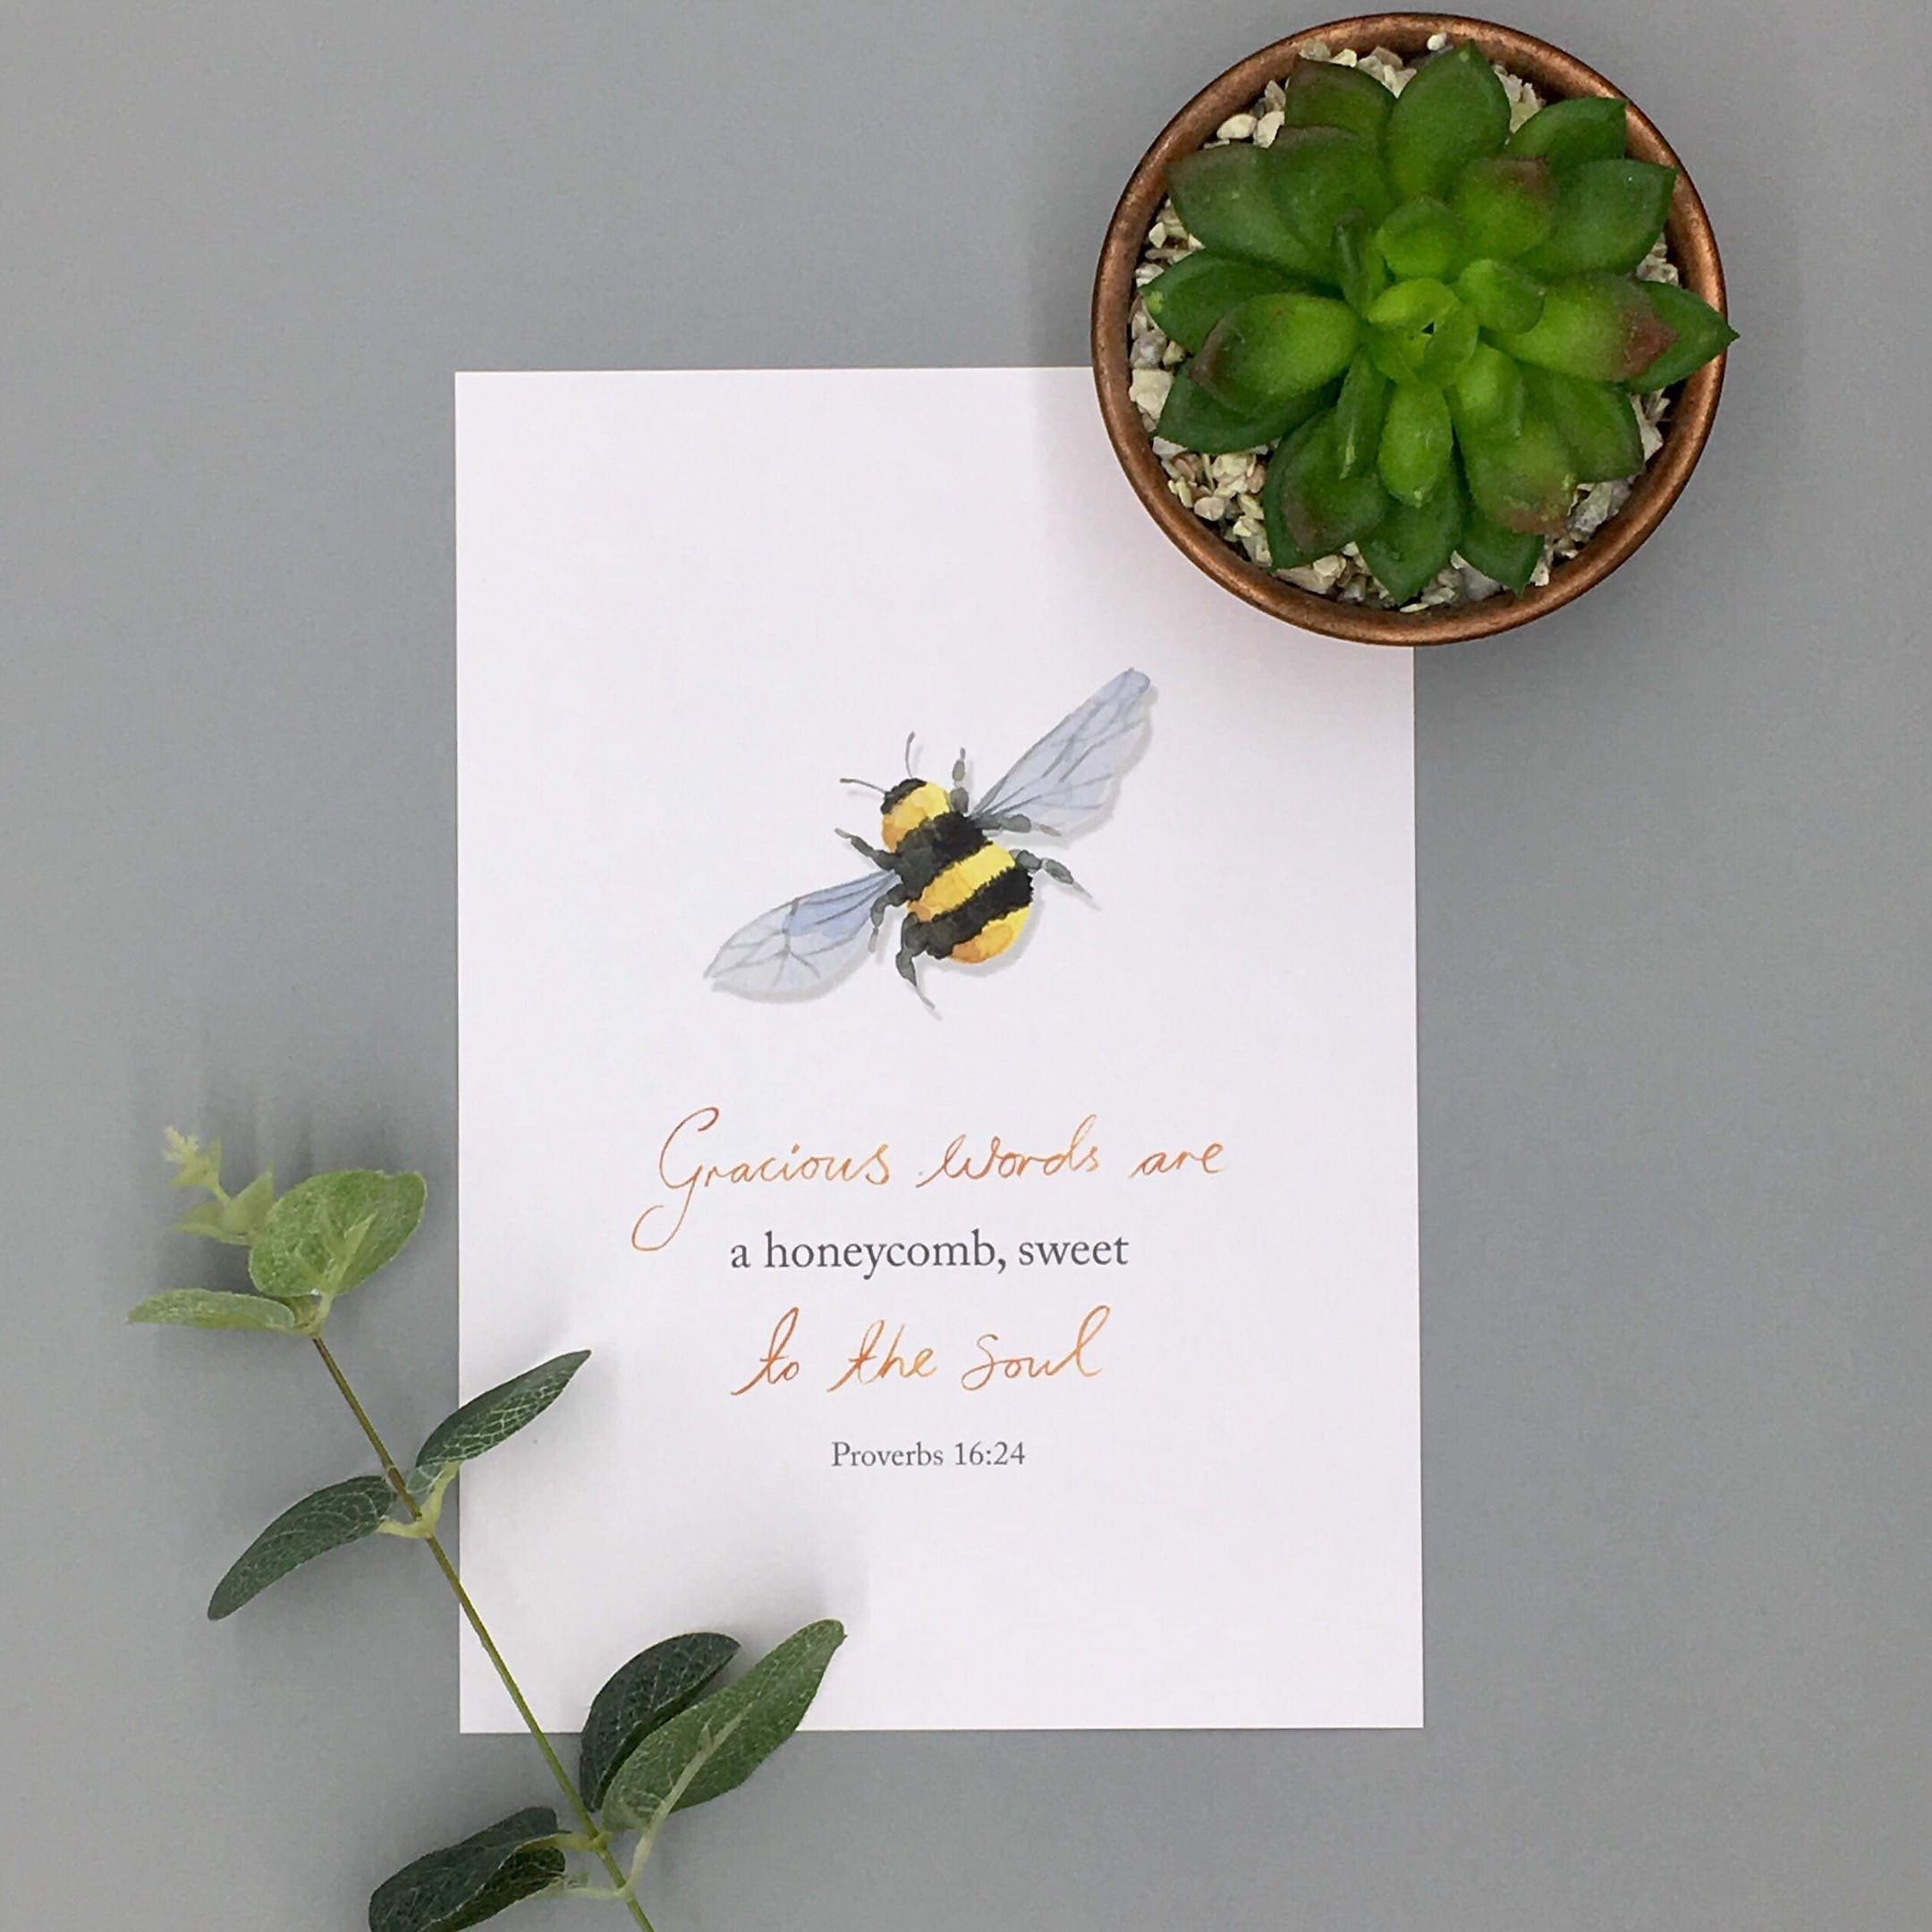 A4/A5 Honeycomb Print - Proverbs 16:24 - Forget-Me-Not Christian Cards